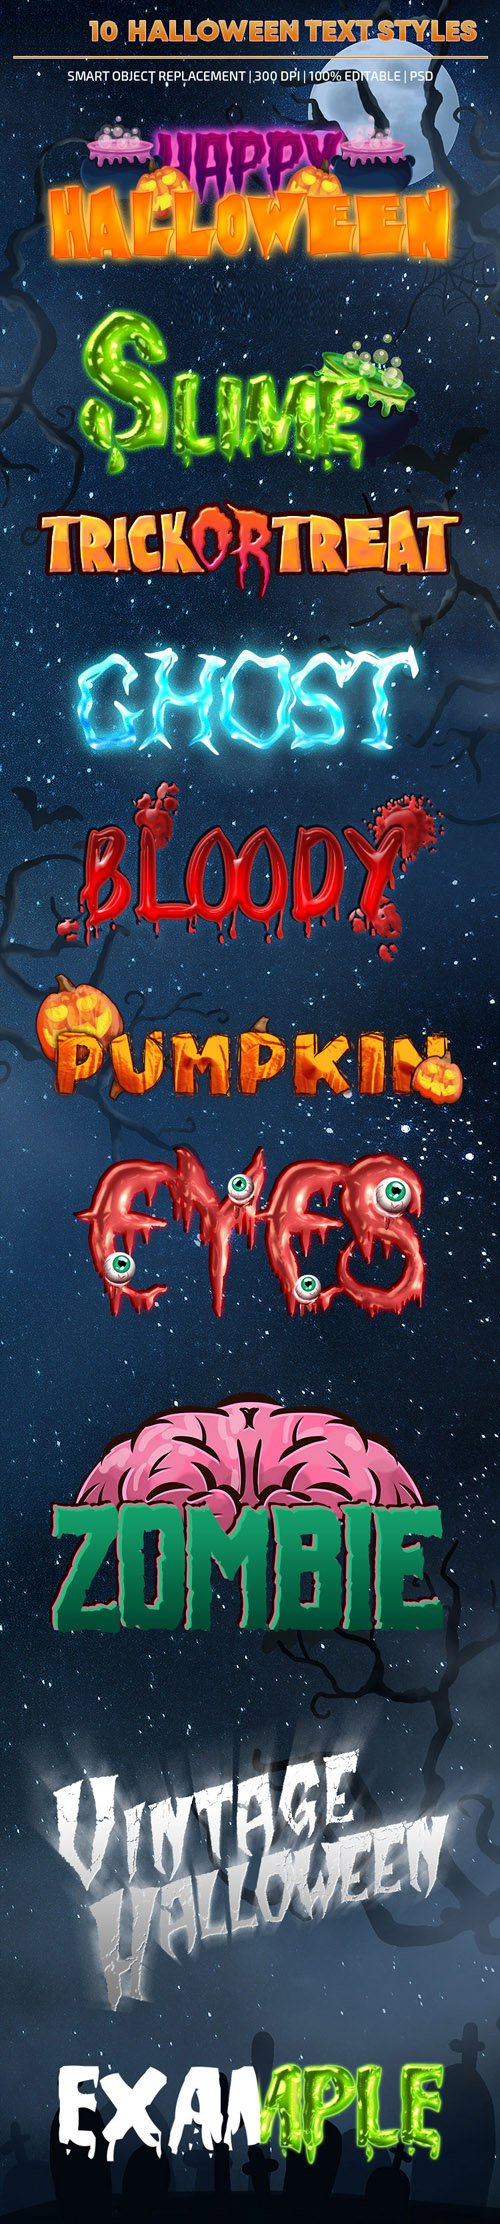 10 Halloween Text Styles for Photoshop